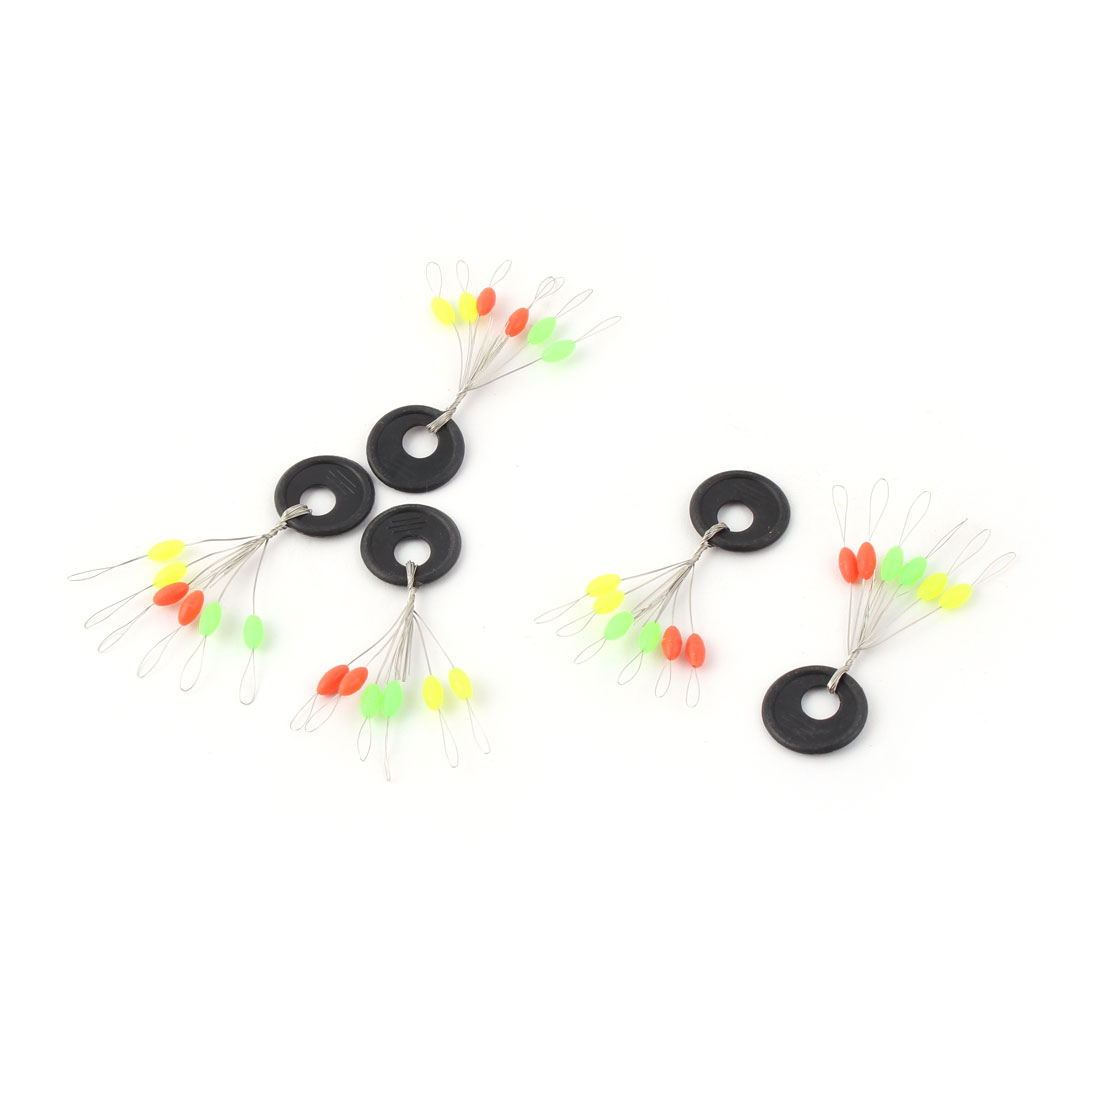 5 Pcs Fishing Colored Olivary 6 in 1 Fish Floating Bobber